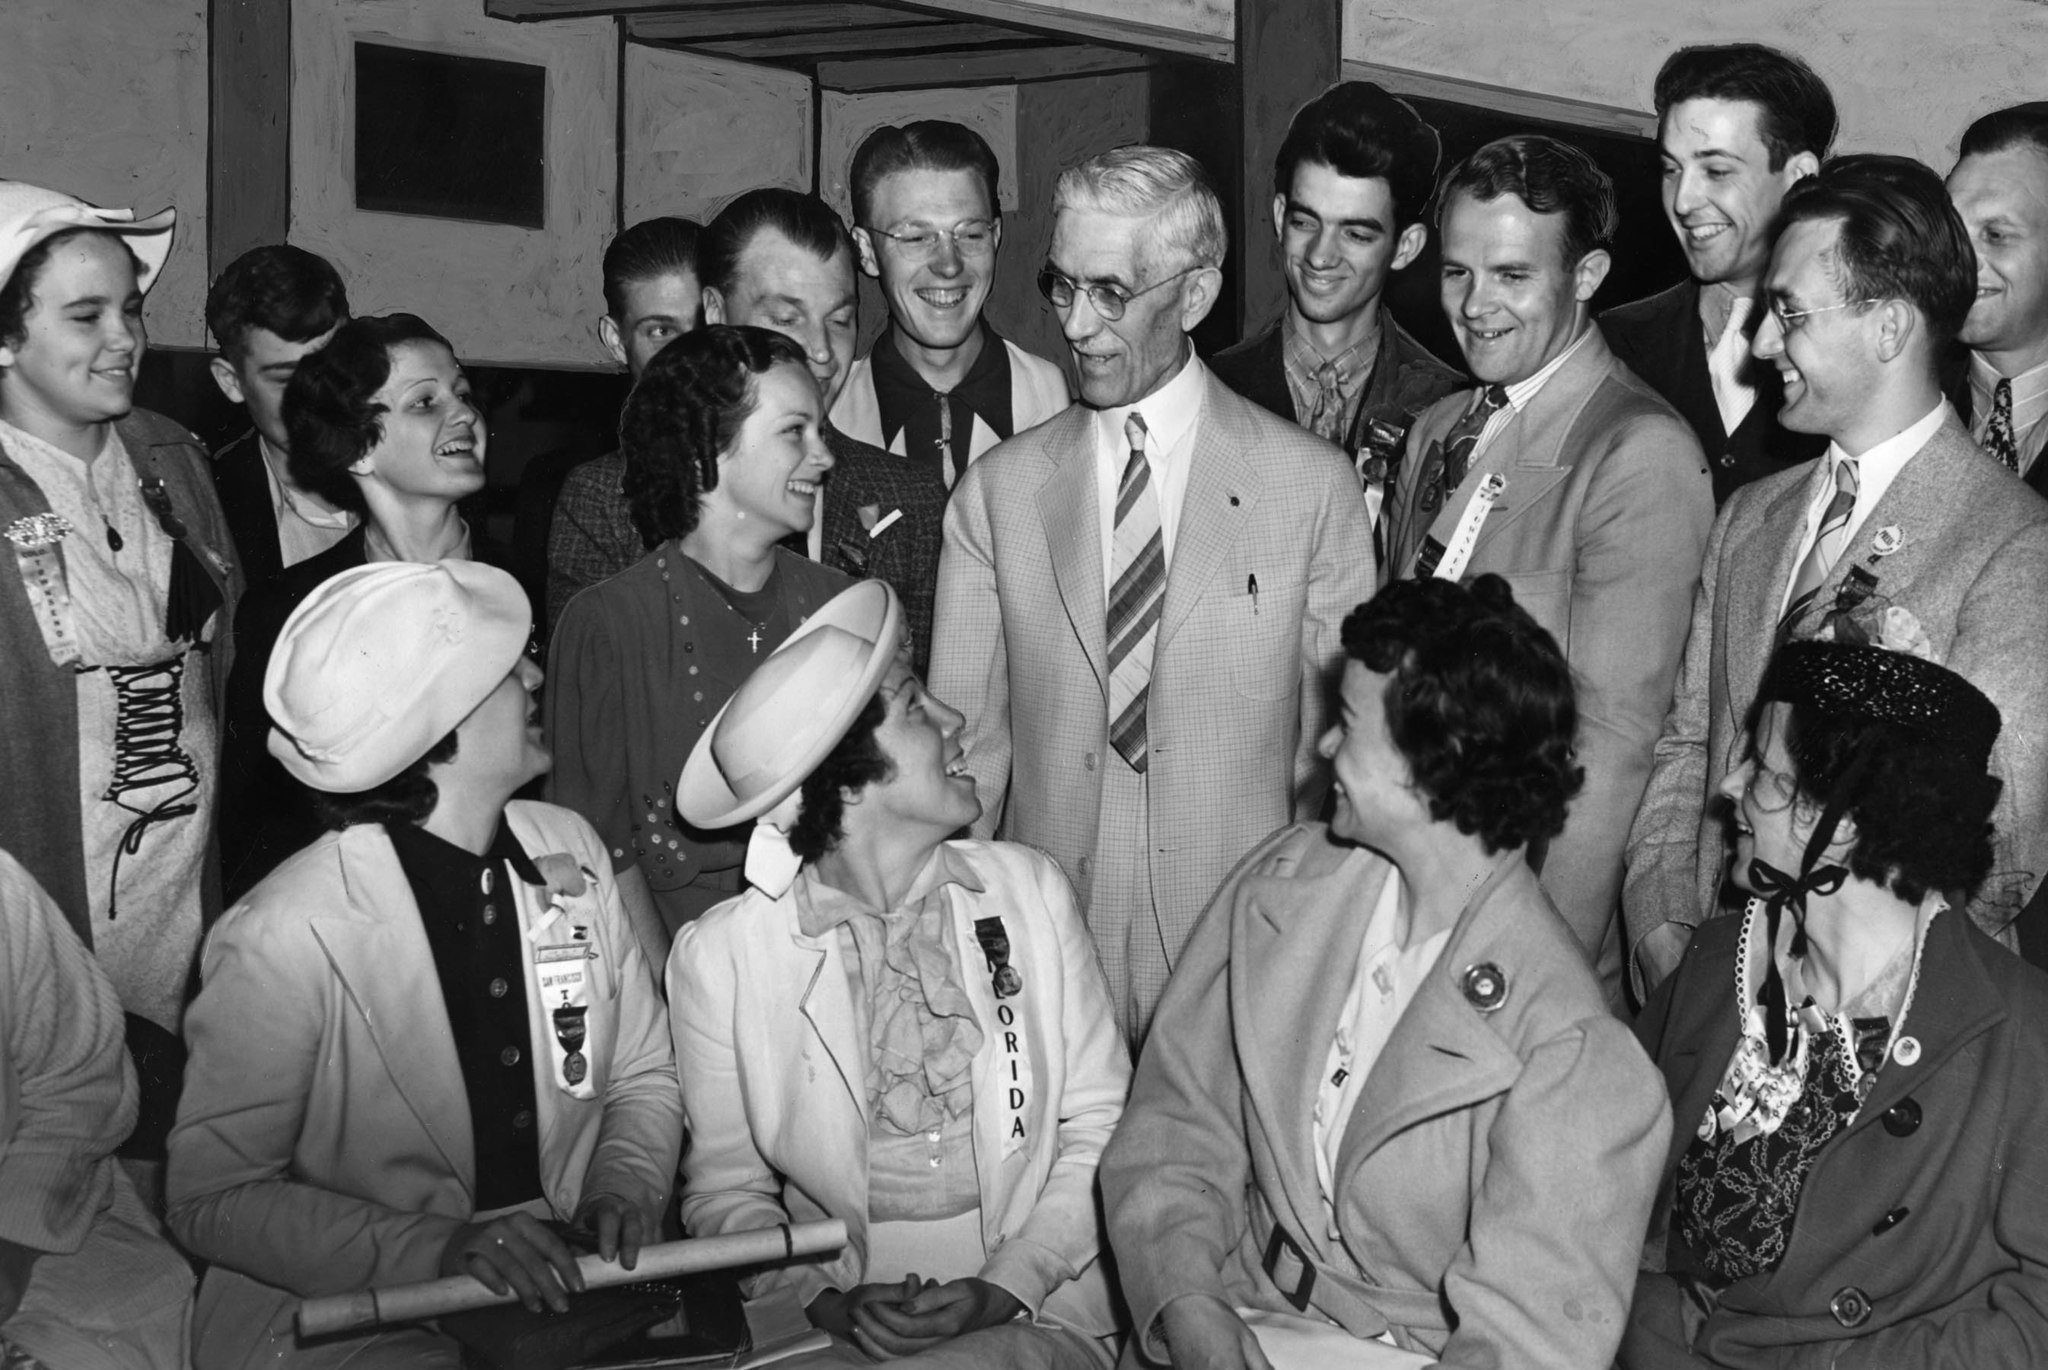 June 21, 1938: Dr. Francis E. Townsend, center, with supporters of his old age pension plan during n